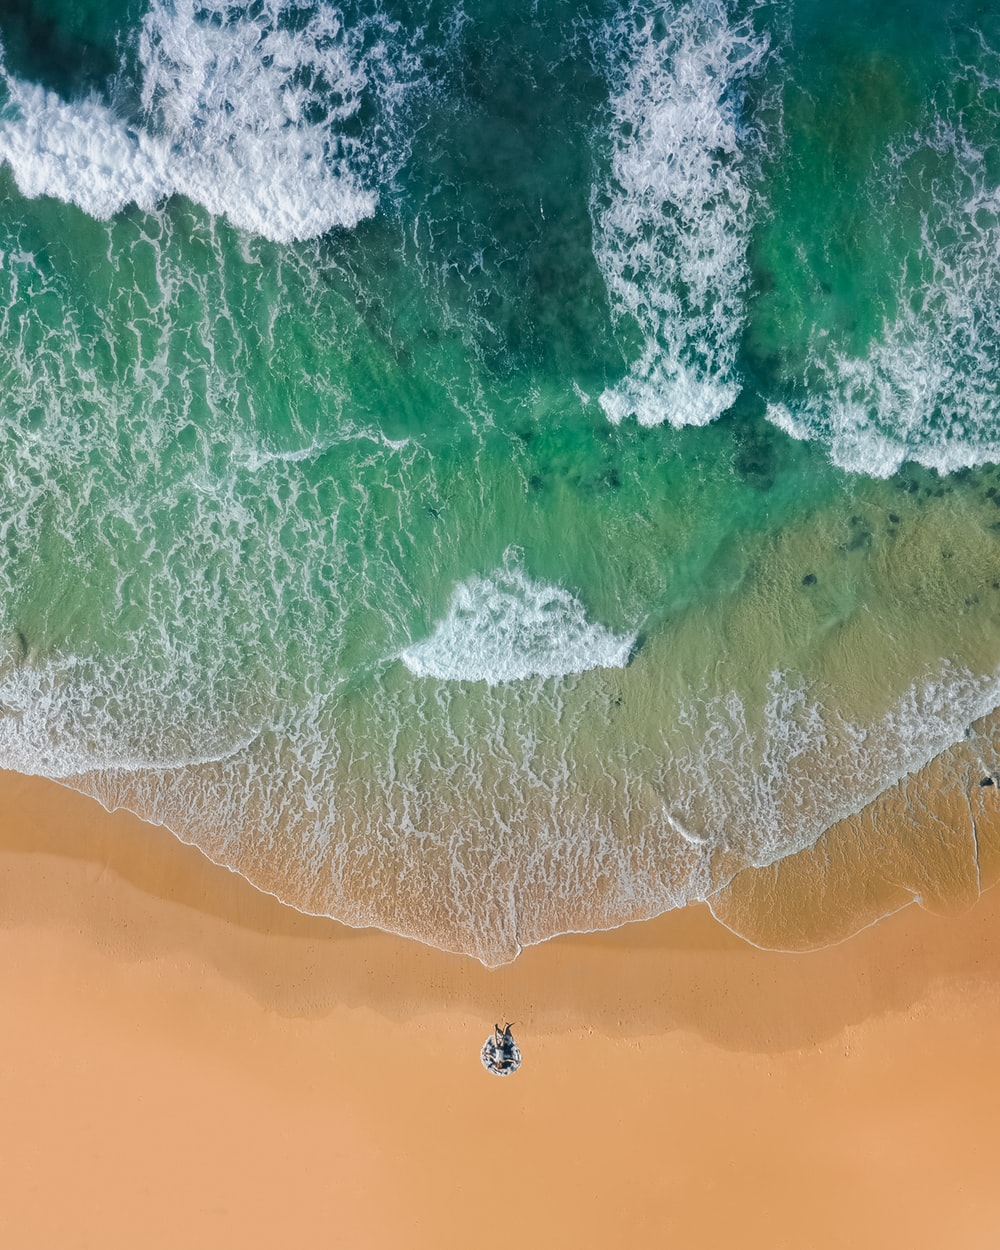 top view photography of brown sand on beach with teal ocean water during daytime